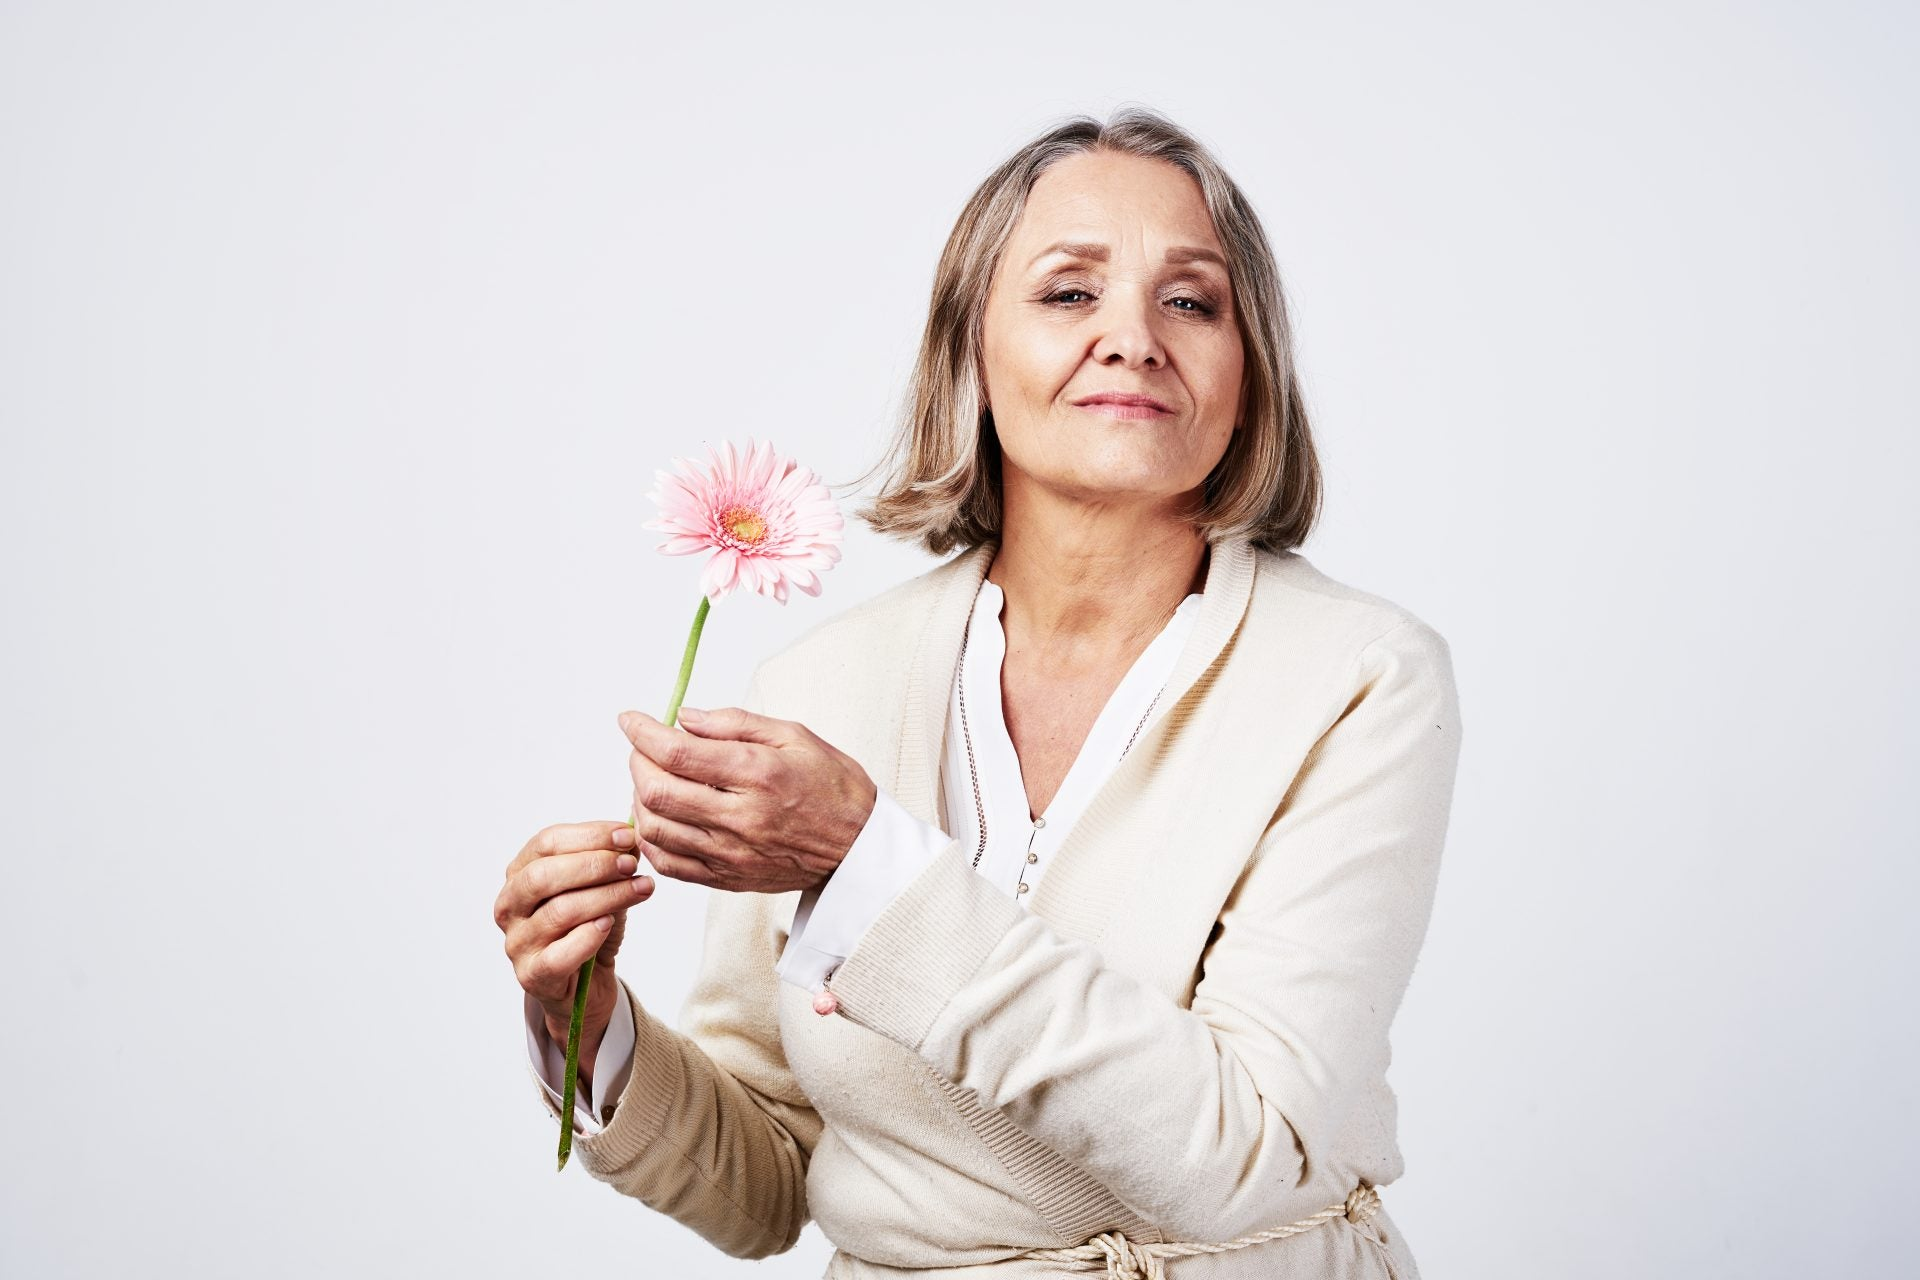 Top 5 Myths about Menopause We Should Stop Believing